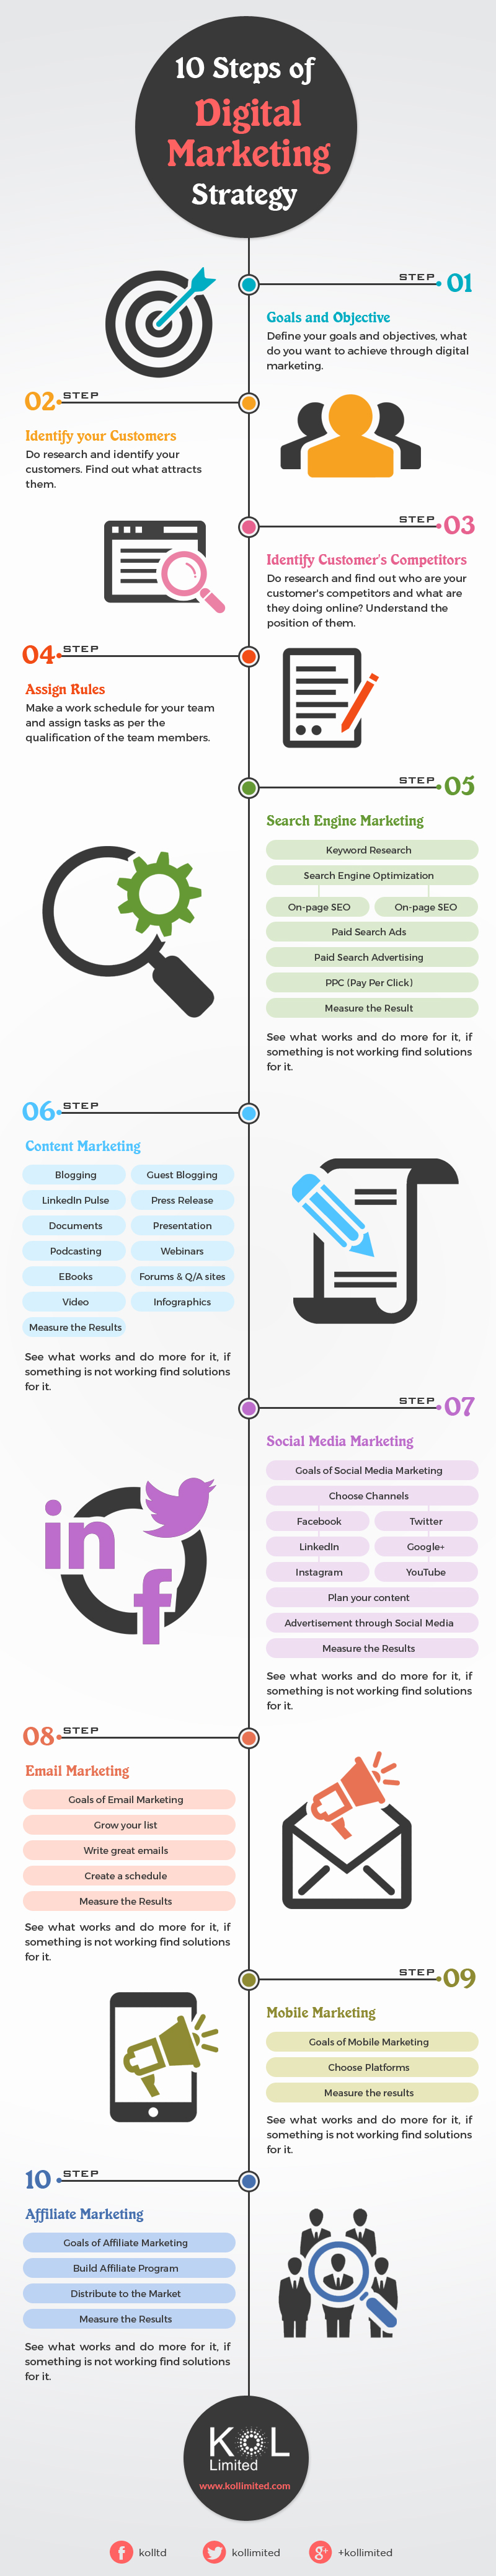 10 Steps of Digital Marketing Strategy [Infographic] - Image 1